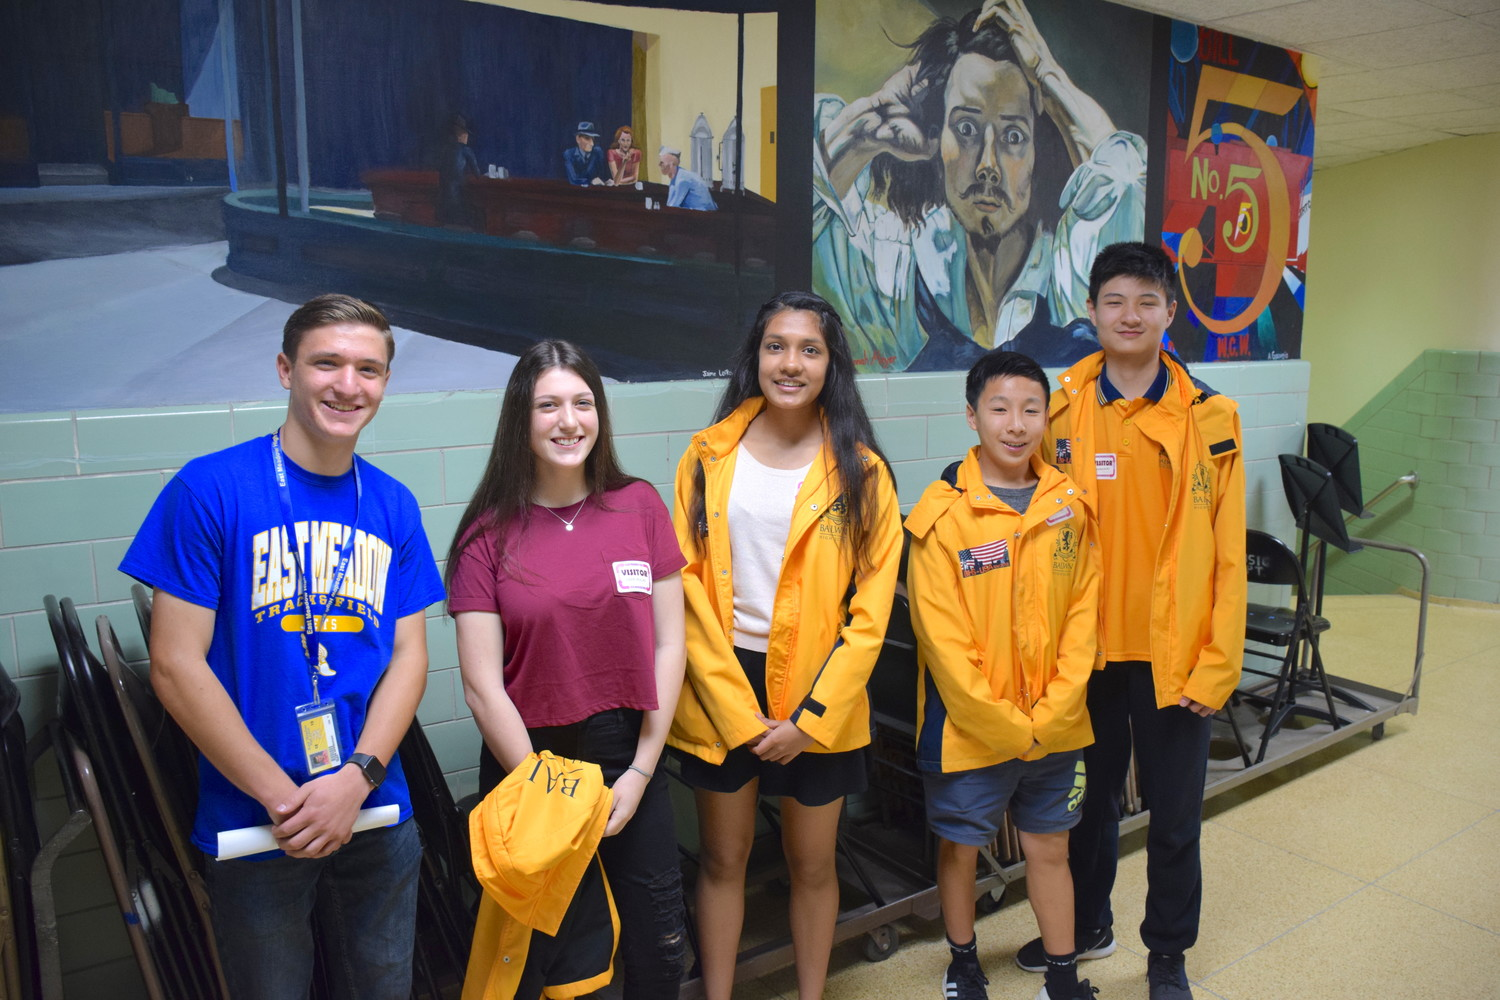 Glenn Newberger, left, a senior at East Meadow High School, led a group of Australian high school students on a tour of his school.